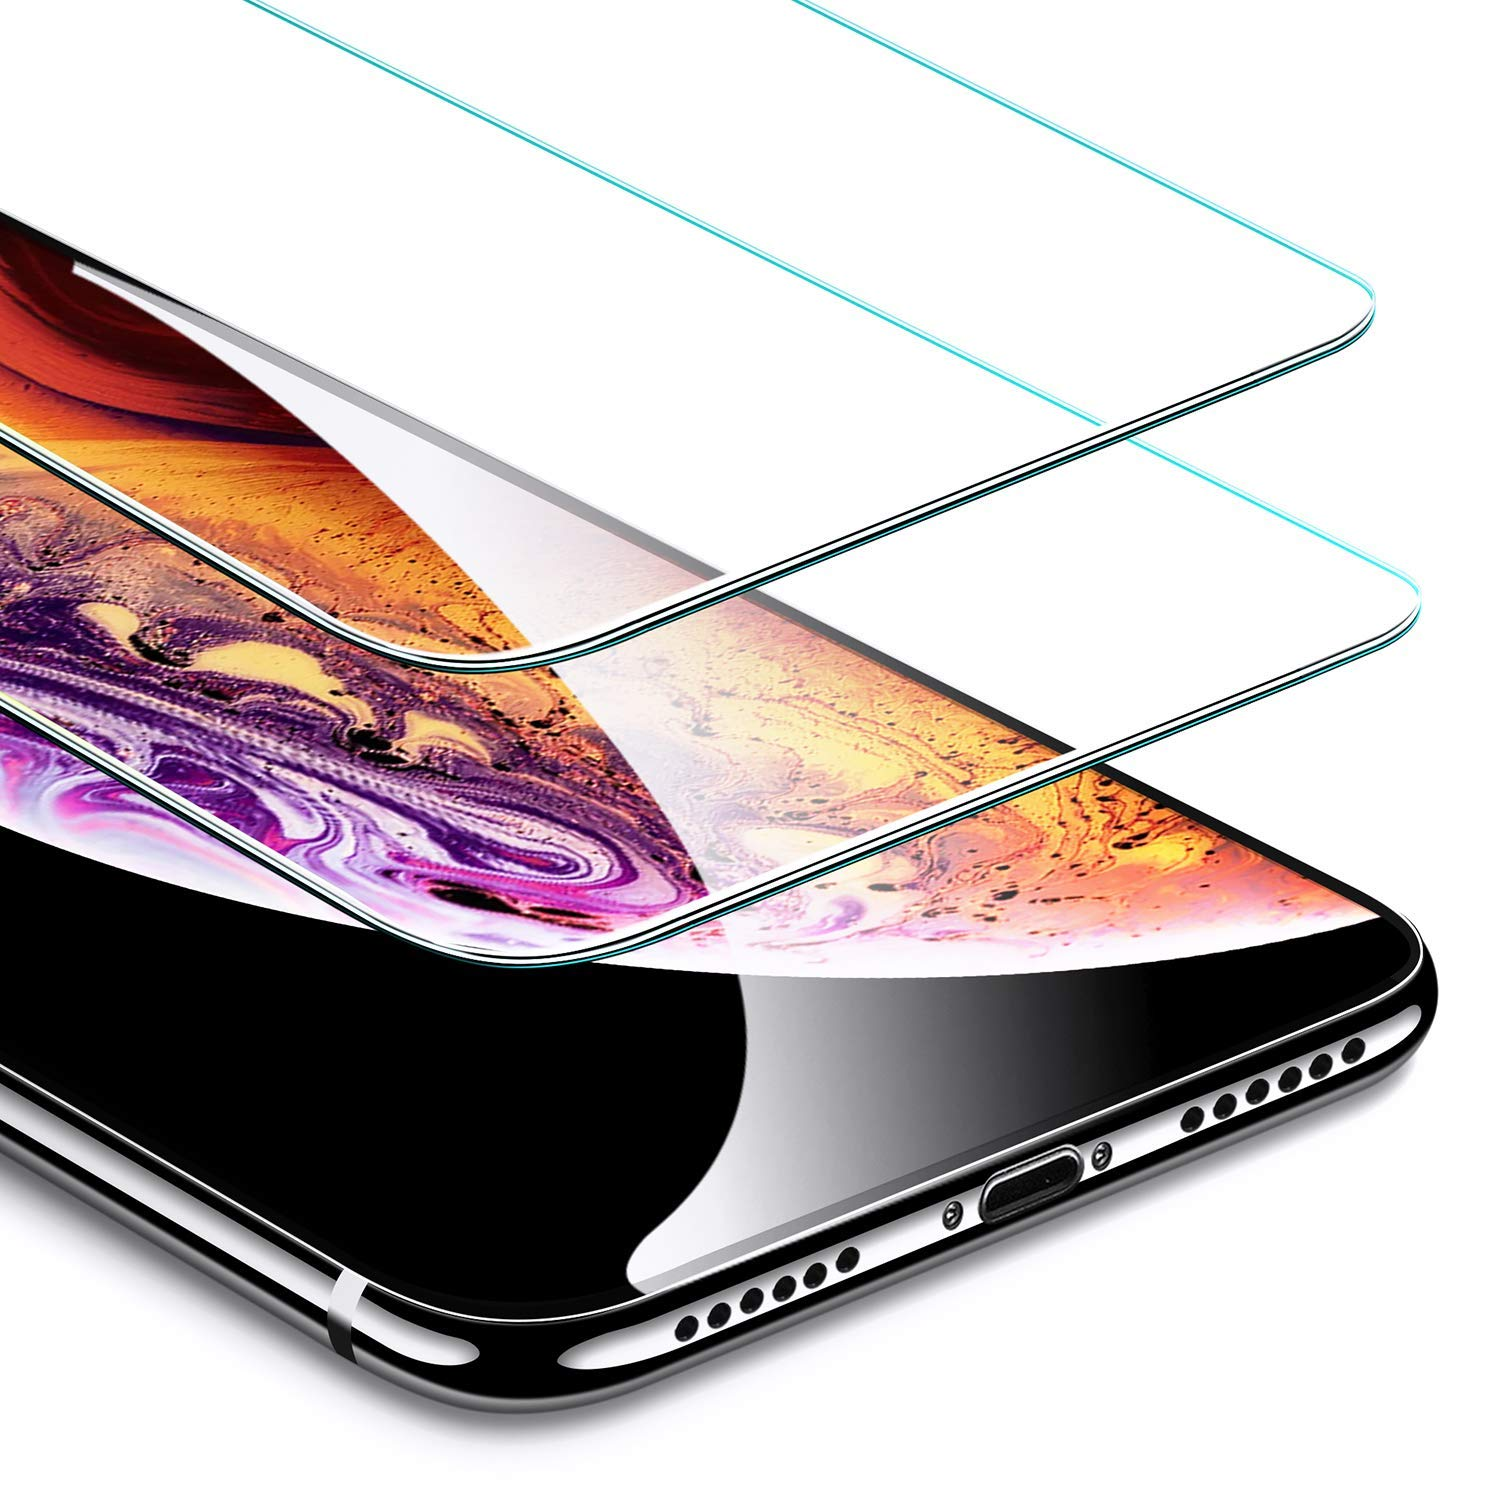 Best Screen Protector for iPhone Xs and iPhone Xs Max